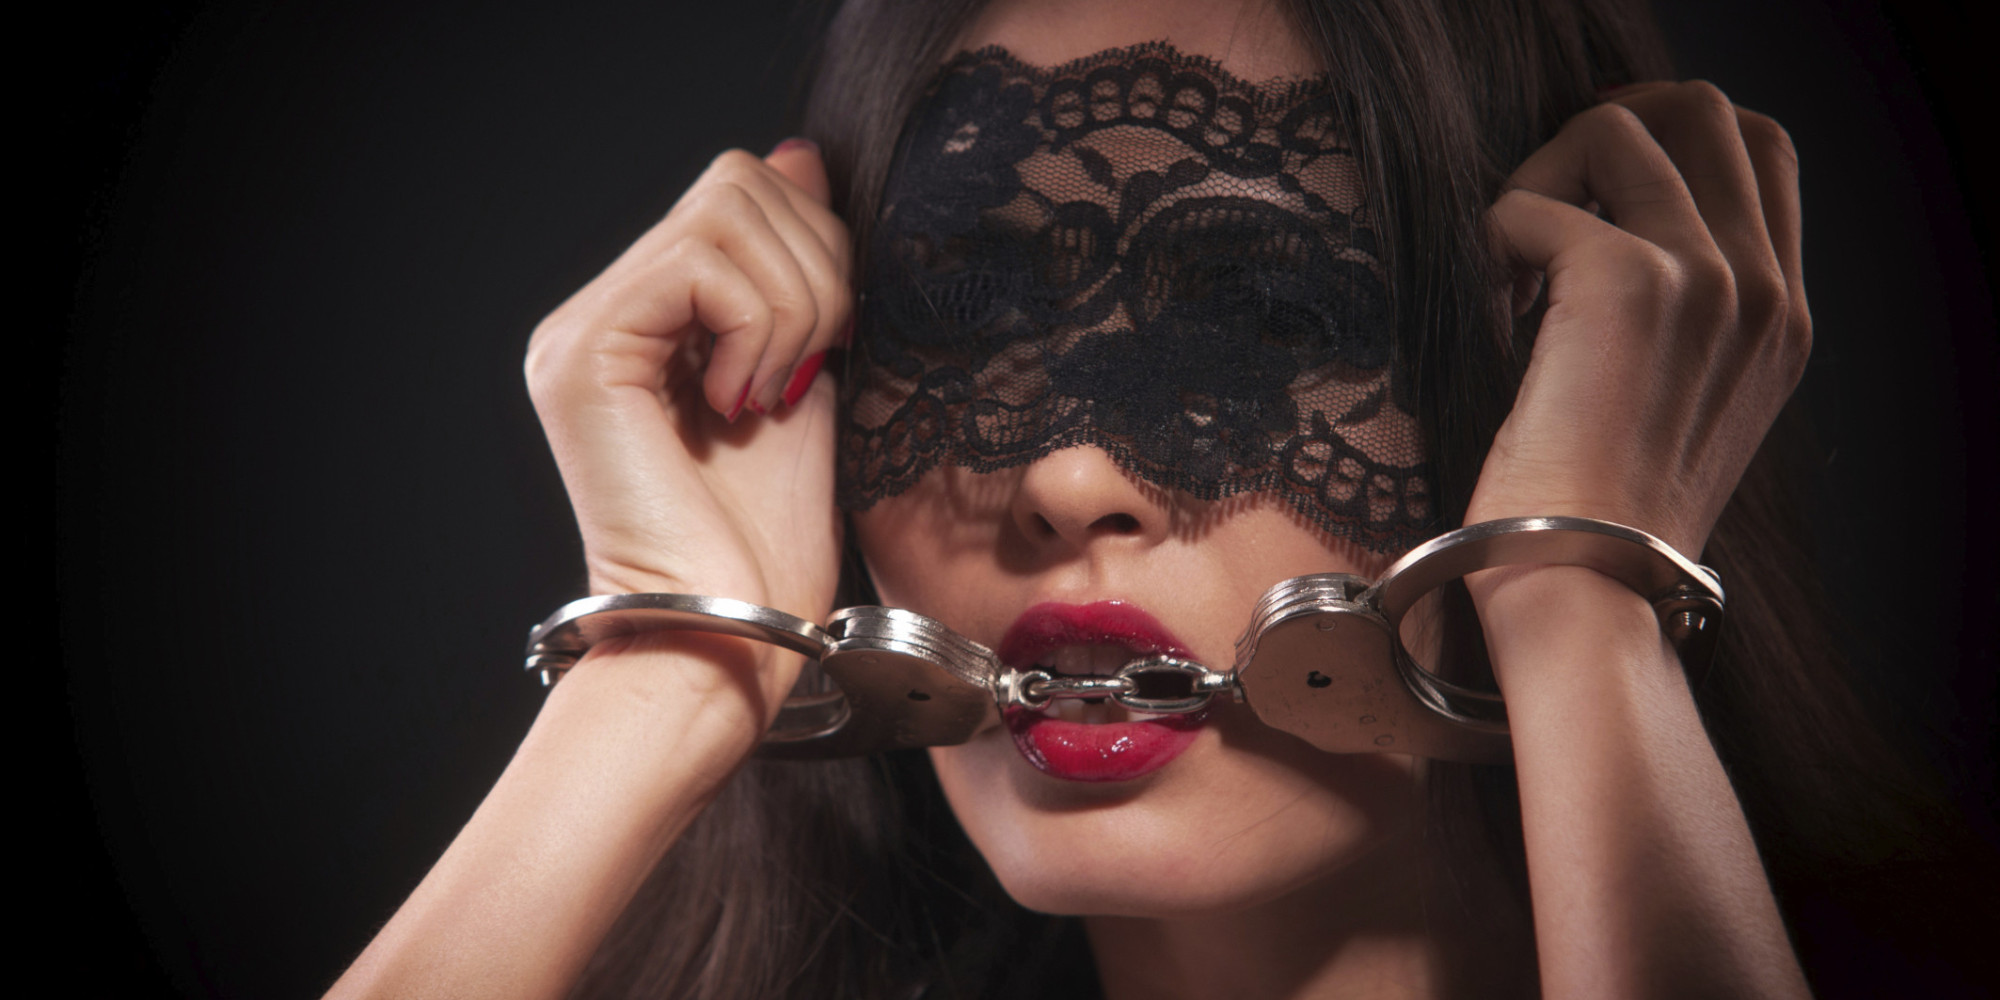 fifty shades bdsm kink apps